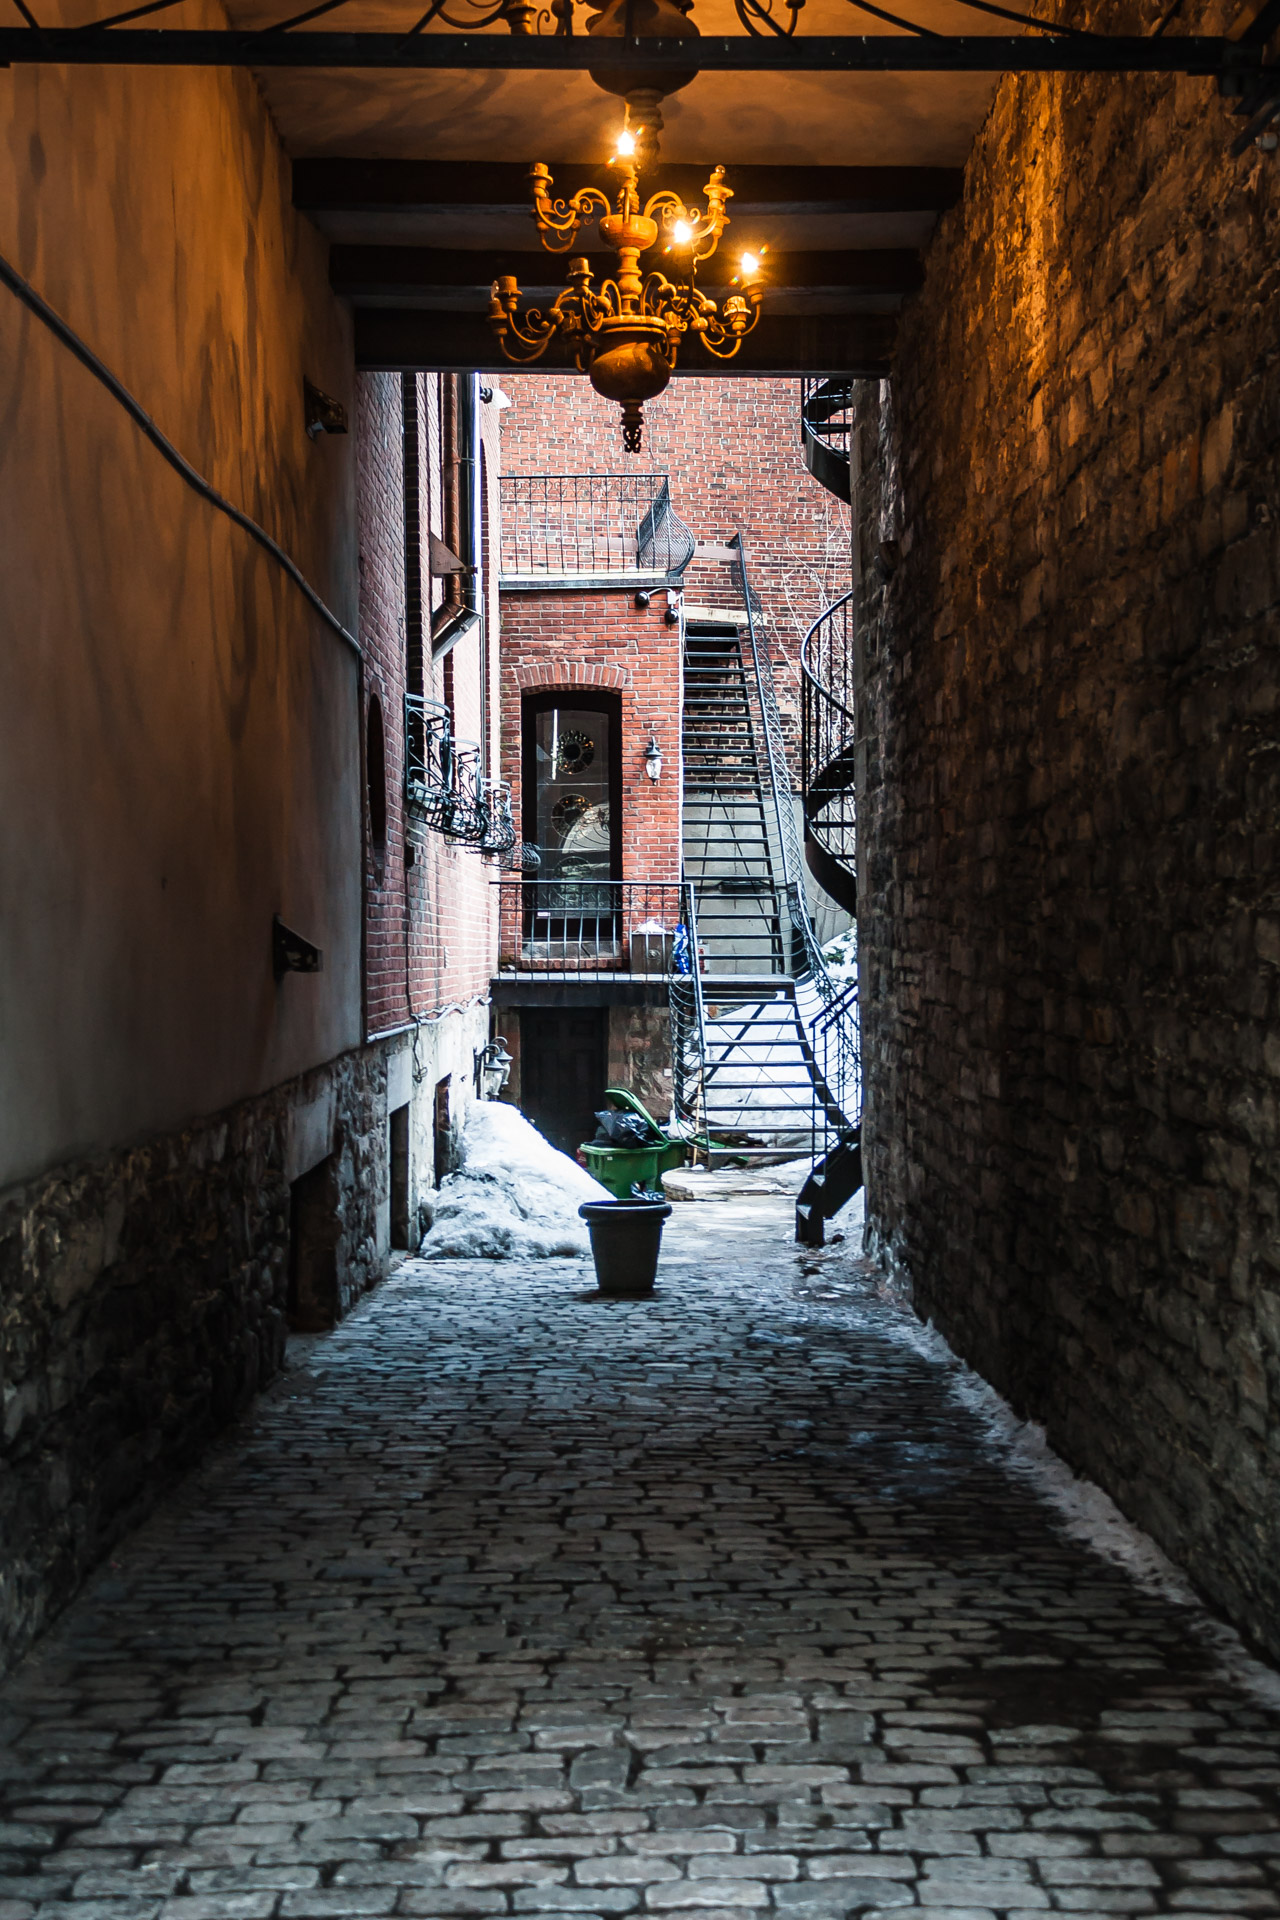 Finding Home In A Travel Destination (alleyway)